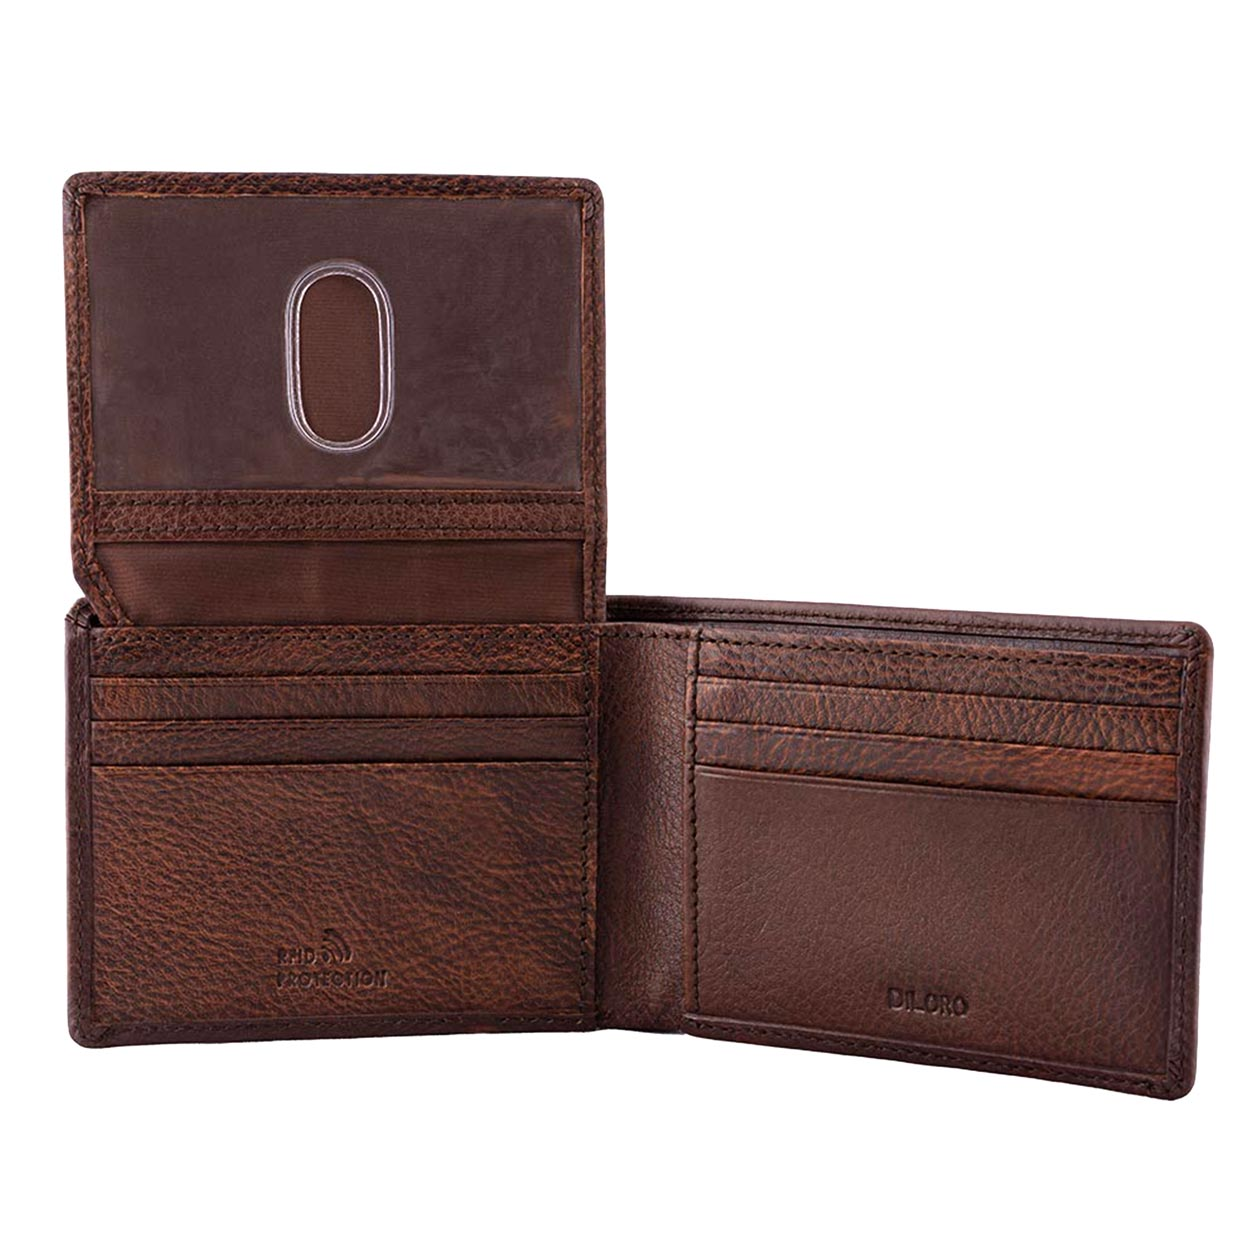 DiLoro Men's Slim Leather Wallet 2 ID Windows Gemini Brown - Open with ID Window Up, Empty Wallet